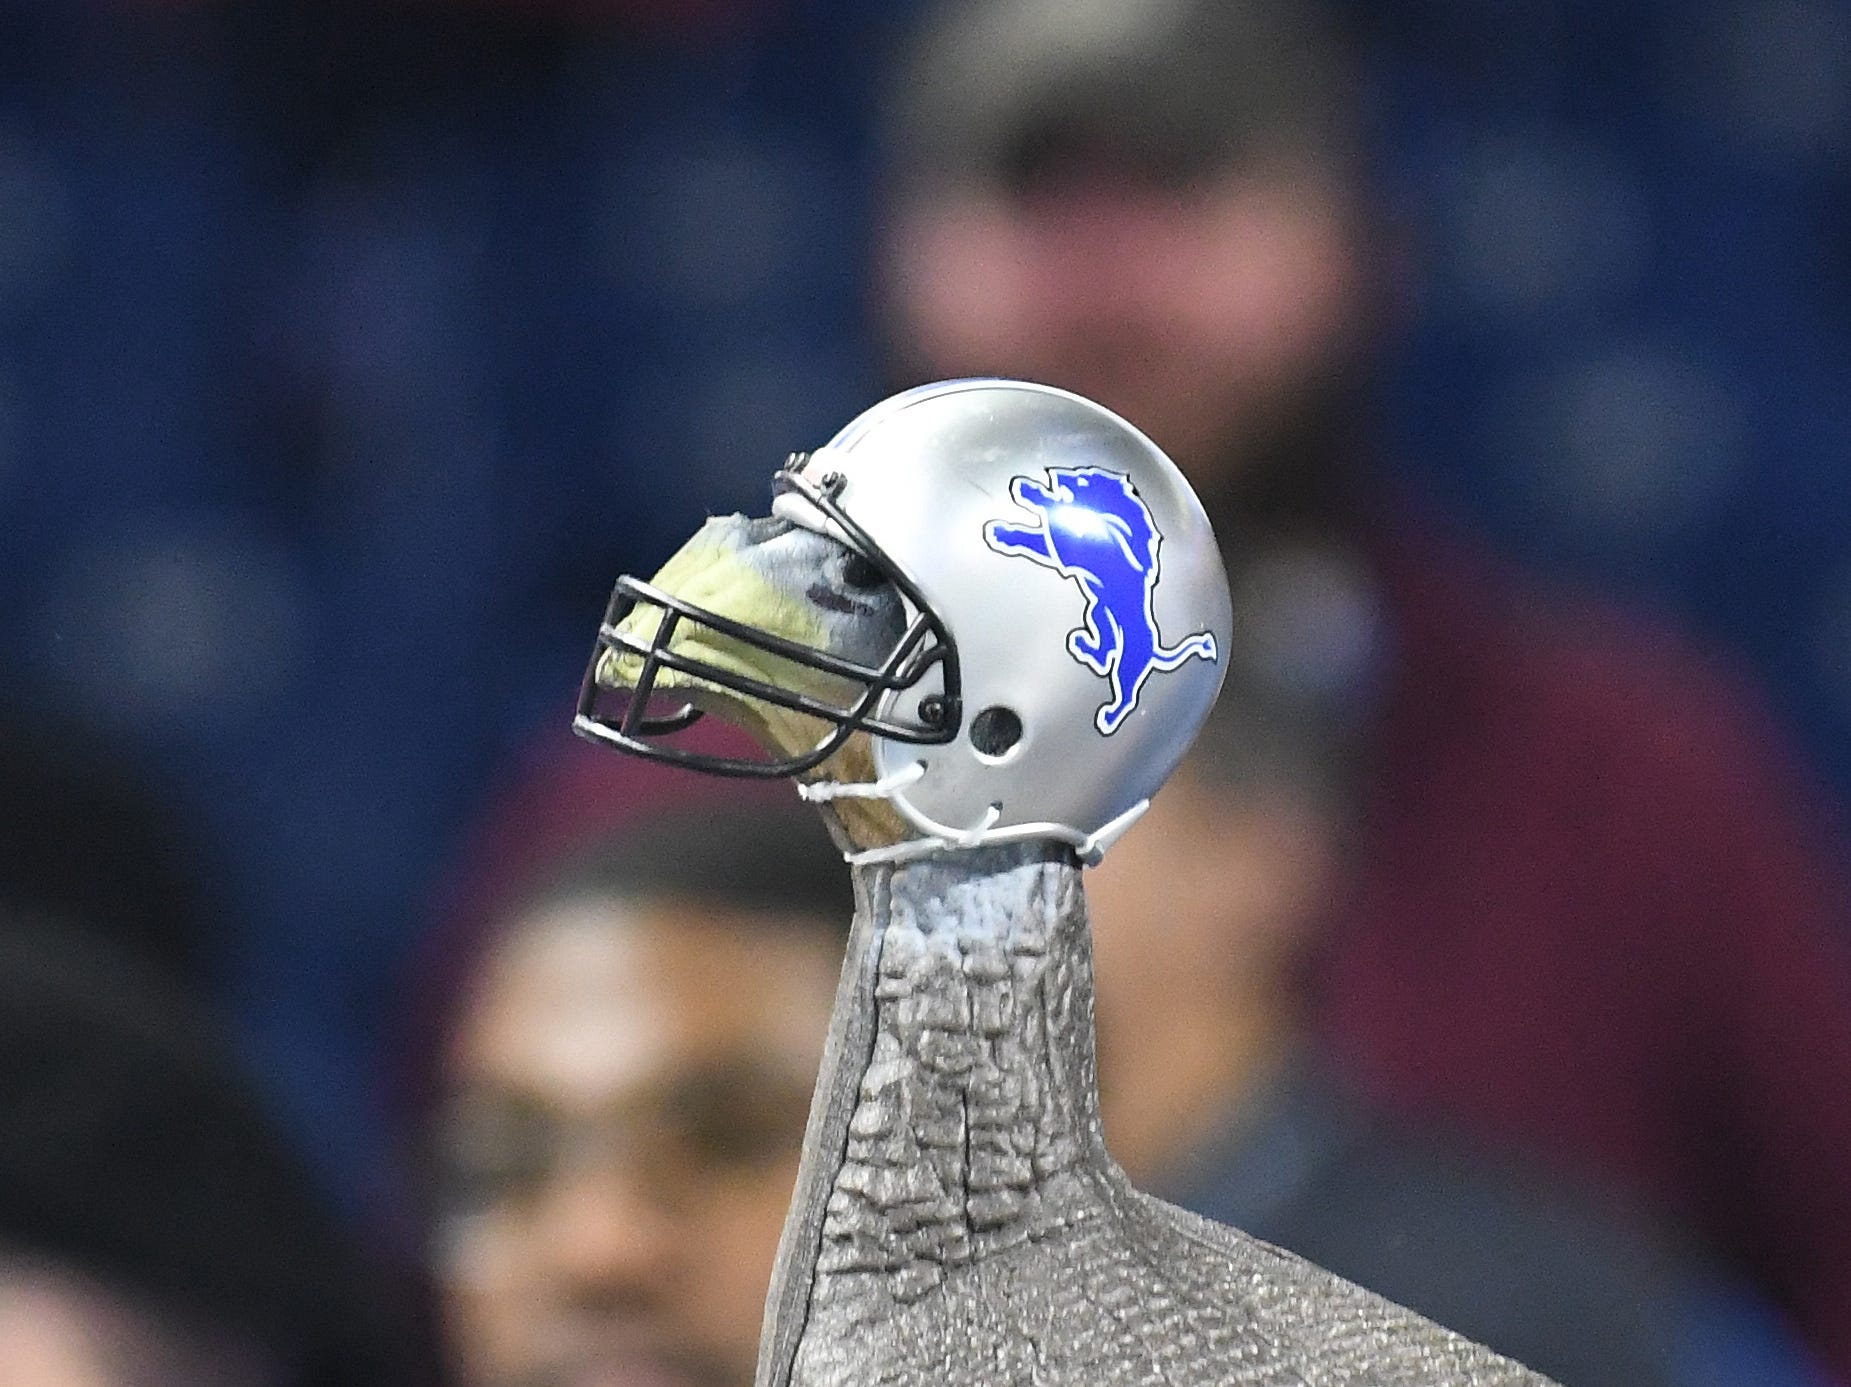 A helmet wearing gobbler contemplates the Lions 23-16 loss to Chicago Bears on Thanksgiving Day.